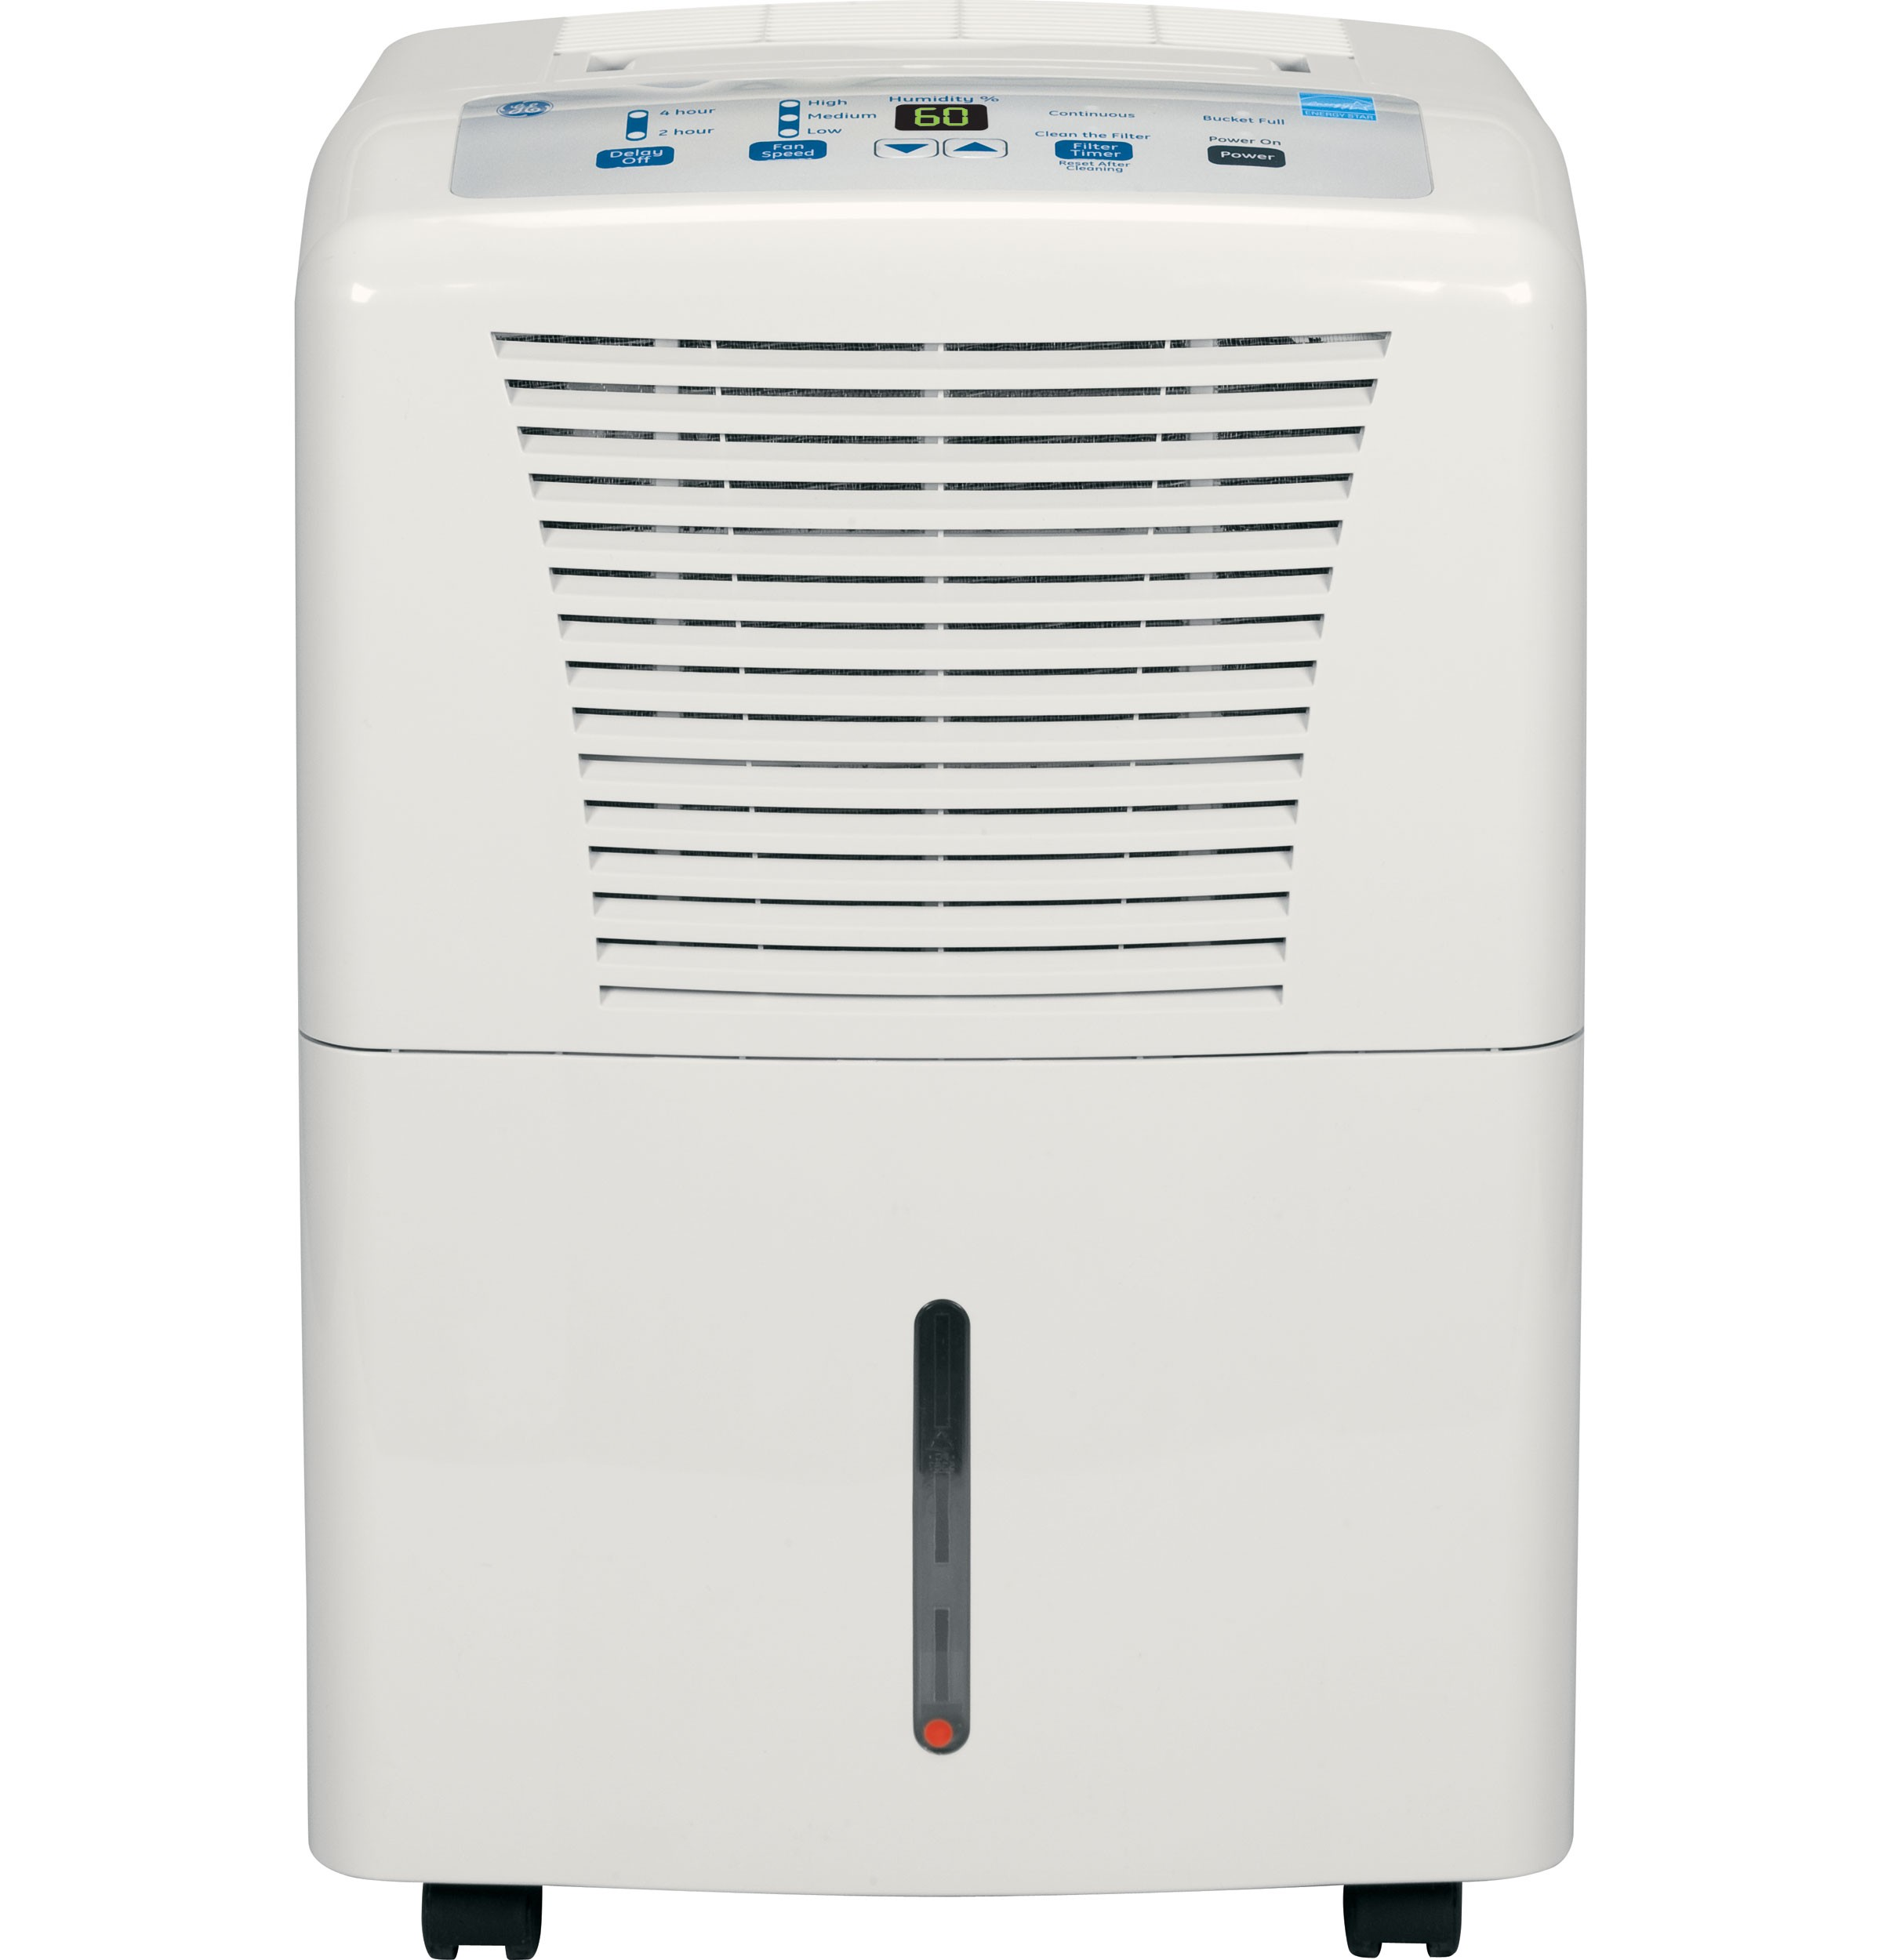 ge adel30lr 30 pint dehumidifier pppa avi depot much more value for your money ge adel30lr 30 pint dehumidifier pppa avi depot much more value for your money